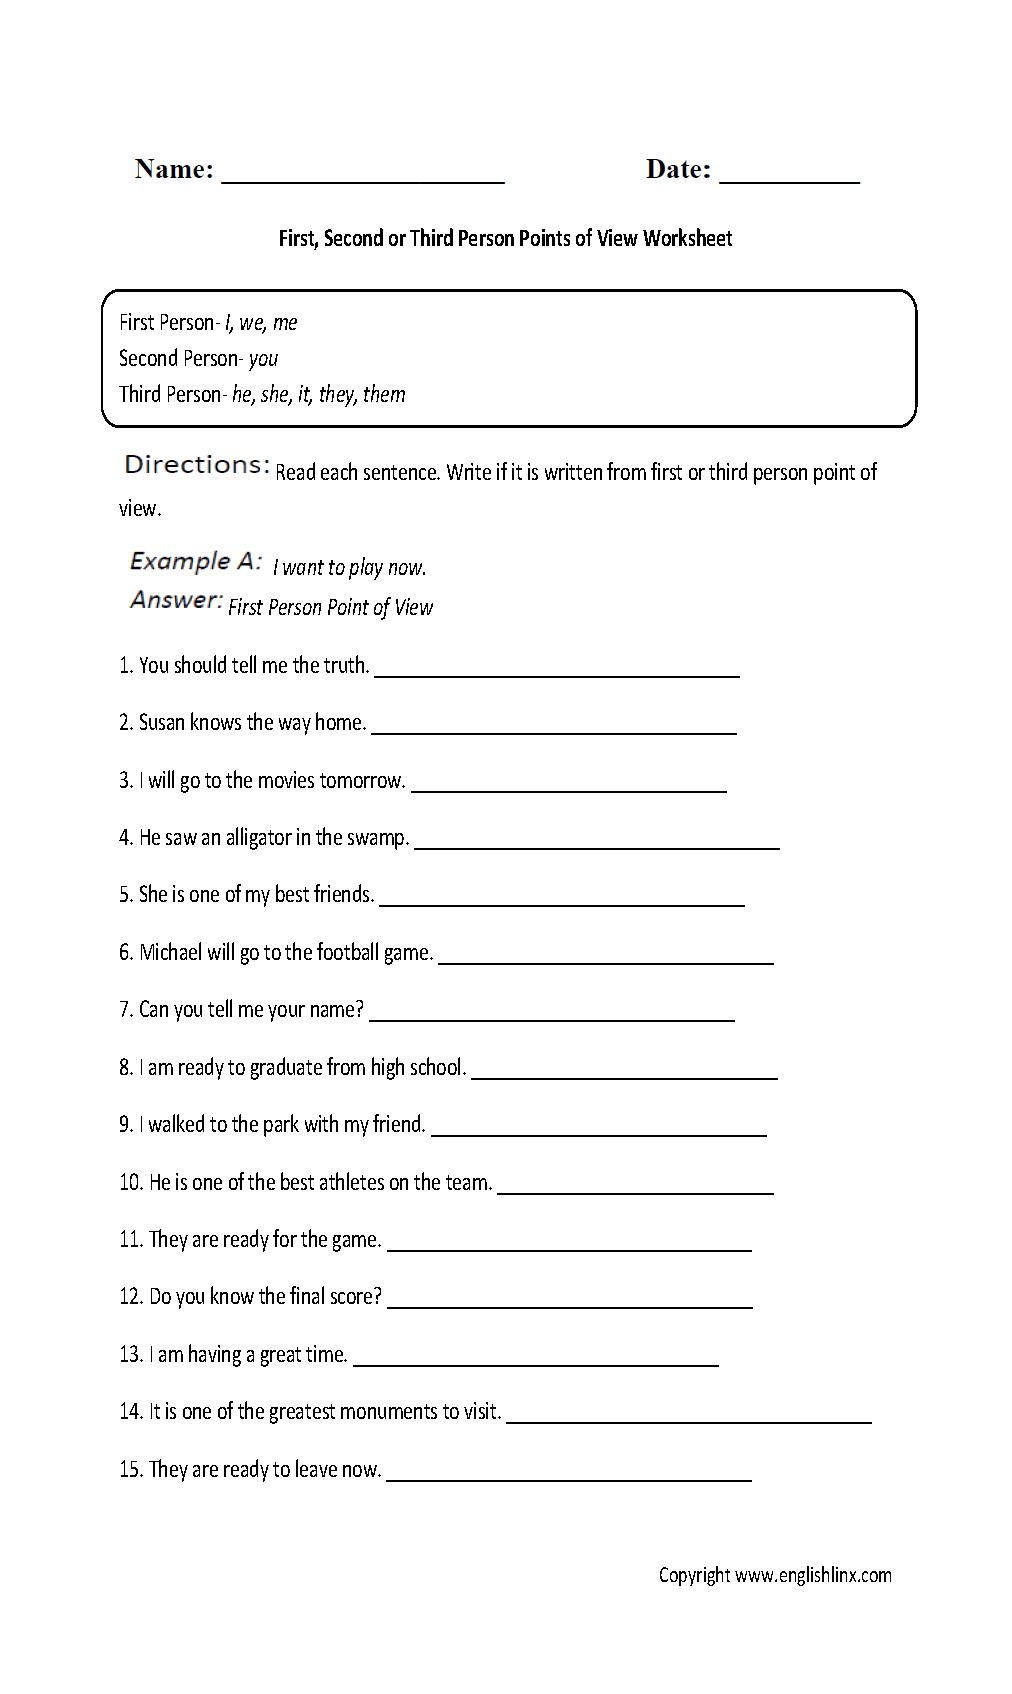 Proatmealus  Ravishing Englishlinxcom  Point Of View Worksheets With Licious Point Of View Worksheet With Adorable Free Download Worksheets Also Grade  English Worksheets Printable In Addition Slope Worksheets Algebra  And Reading Comprehension Worksheet Grade  As Well As Number Worksheets Ks Additionally Addition Array Worksheets From Englishlinxcom With Proatmealus  Licious Englishlinxcom  Point Of View Worksheets With Adorable Point Of View Worksheet And Ravishing Free Download Worksheets Also Grade  English Worksheets Printable In Addition Slope Worksheets Algebra  From Englishlinxcom